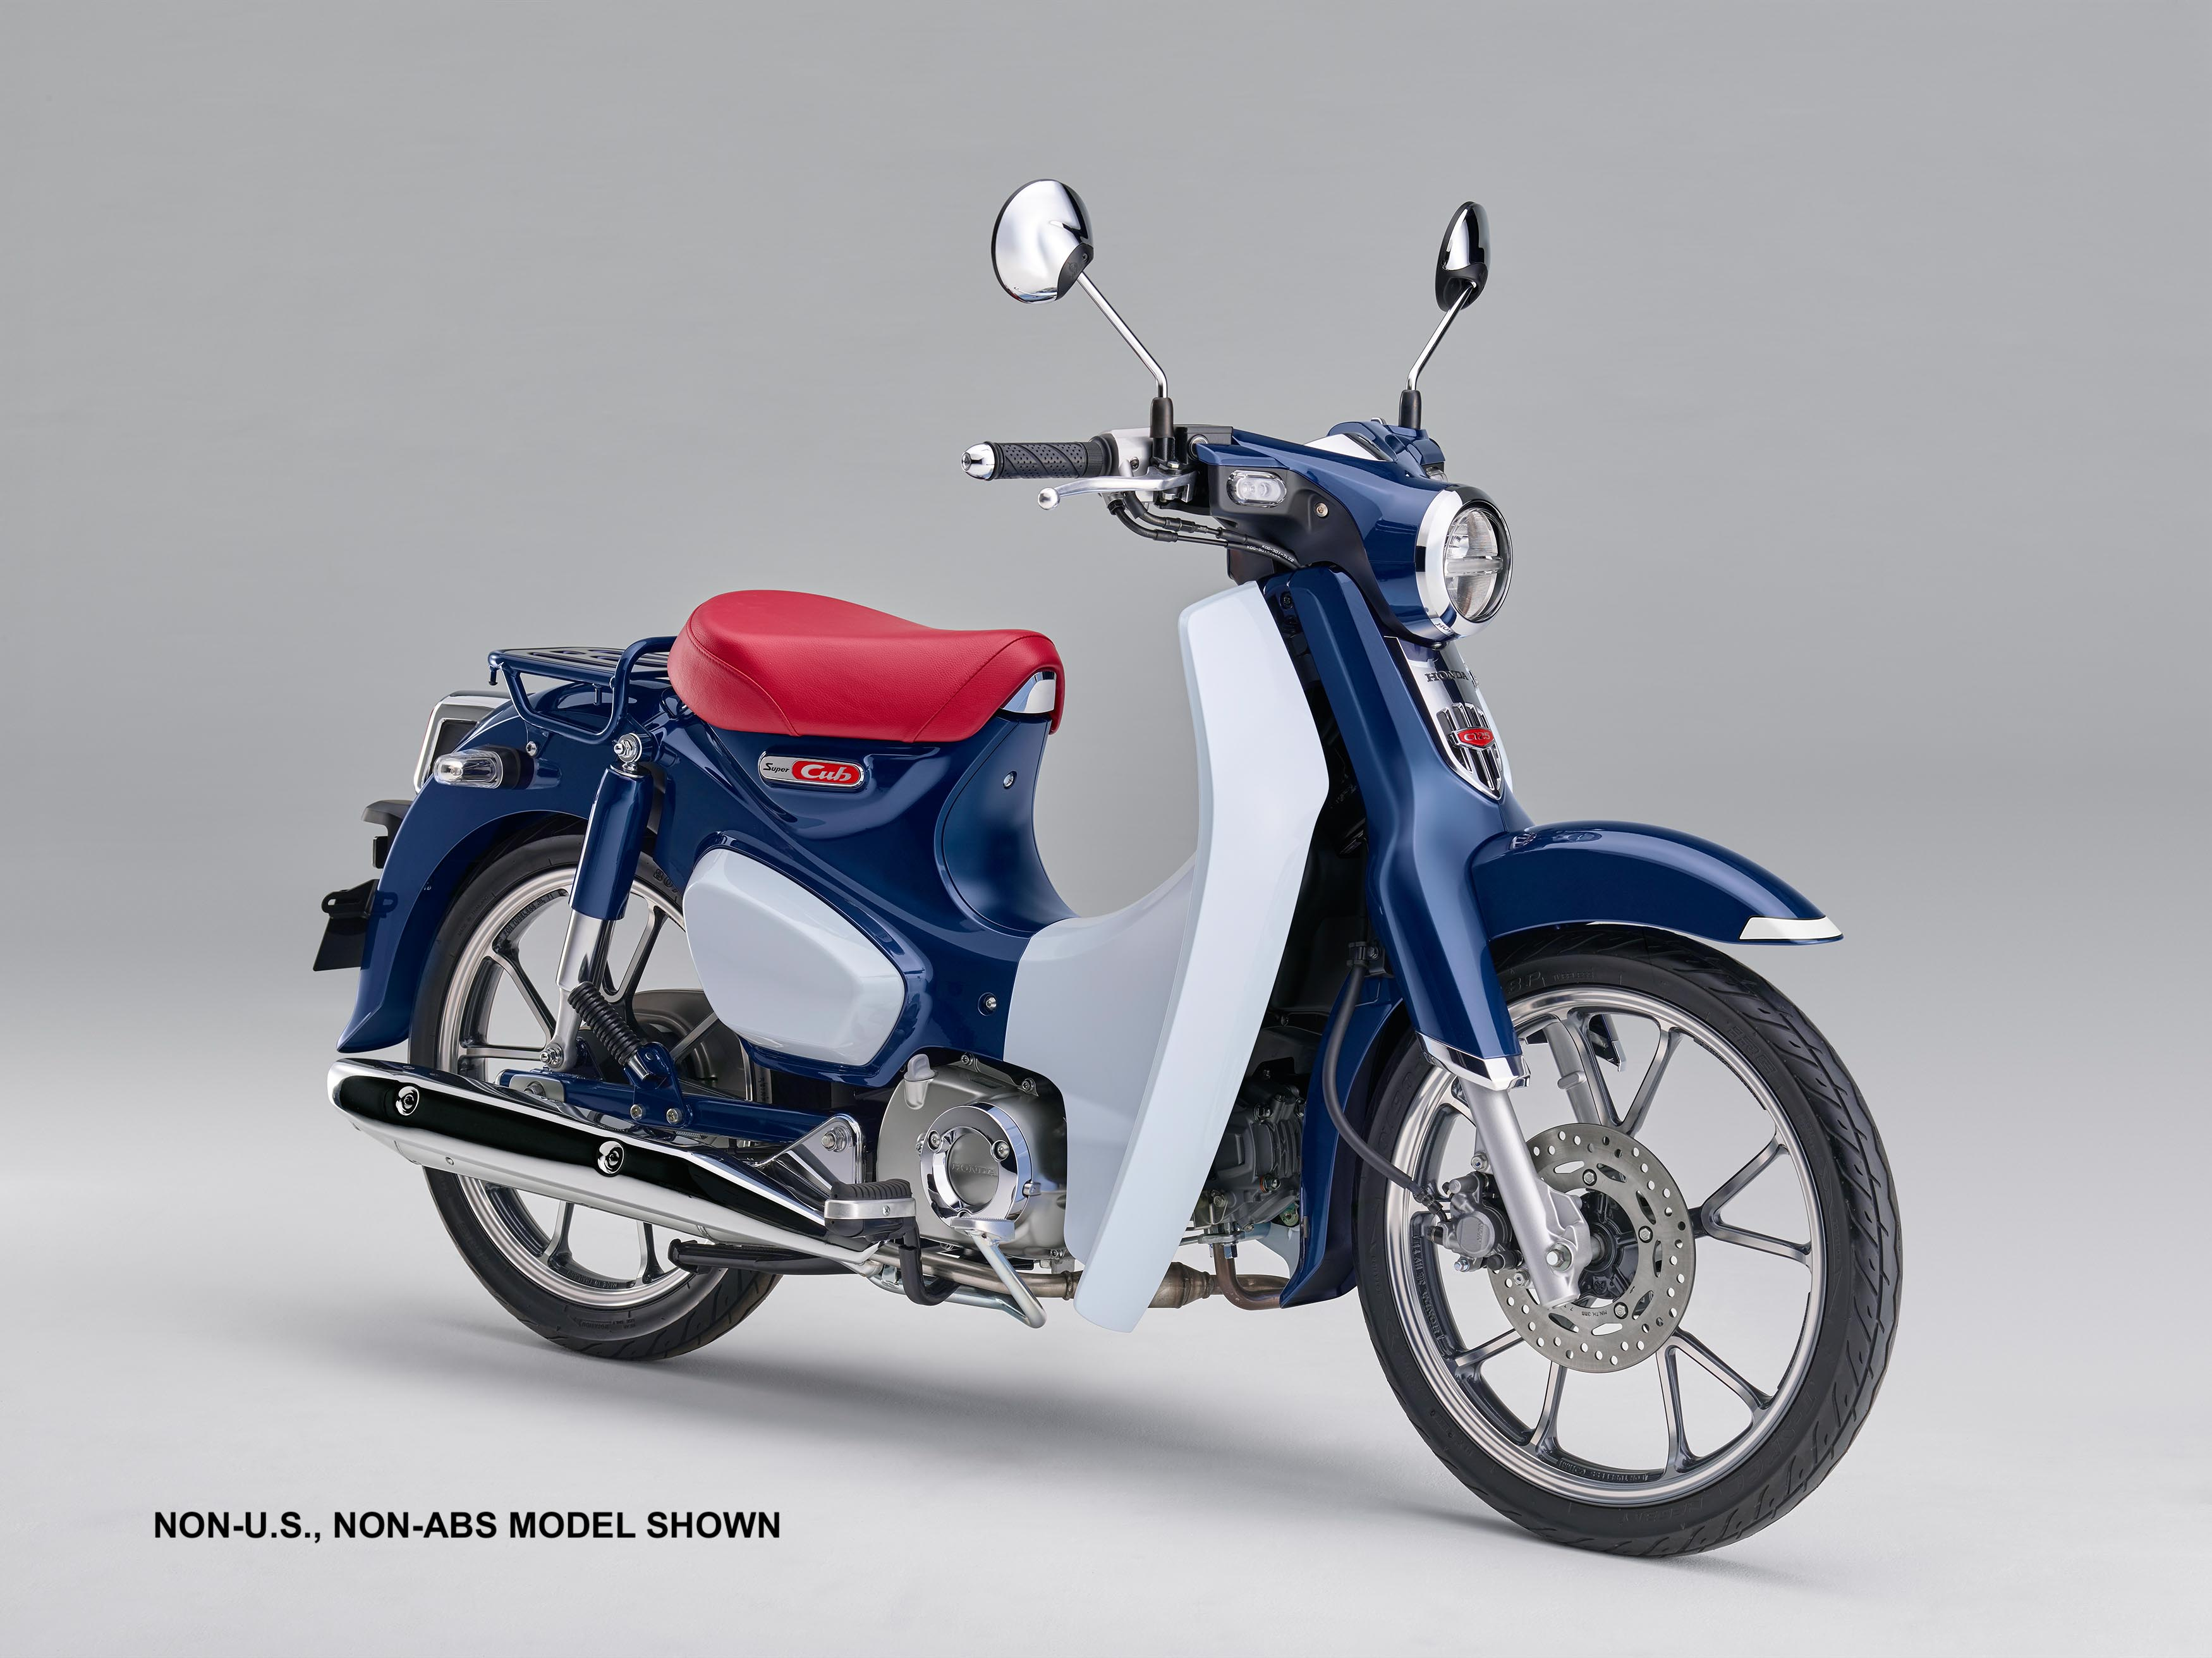 2019 Honda Super Cub side view